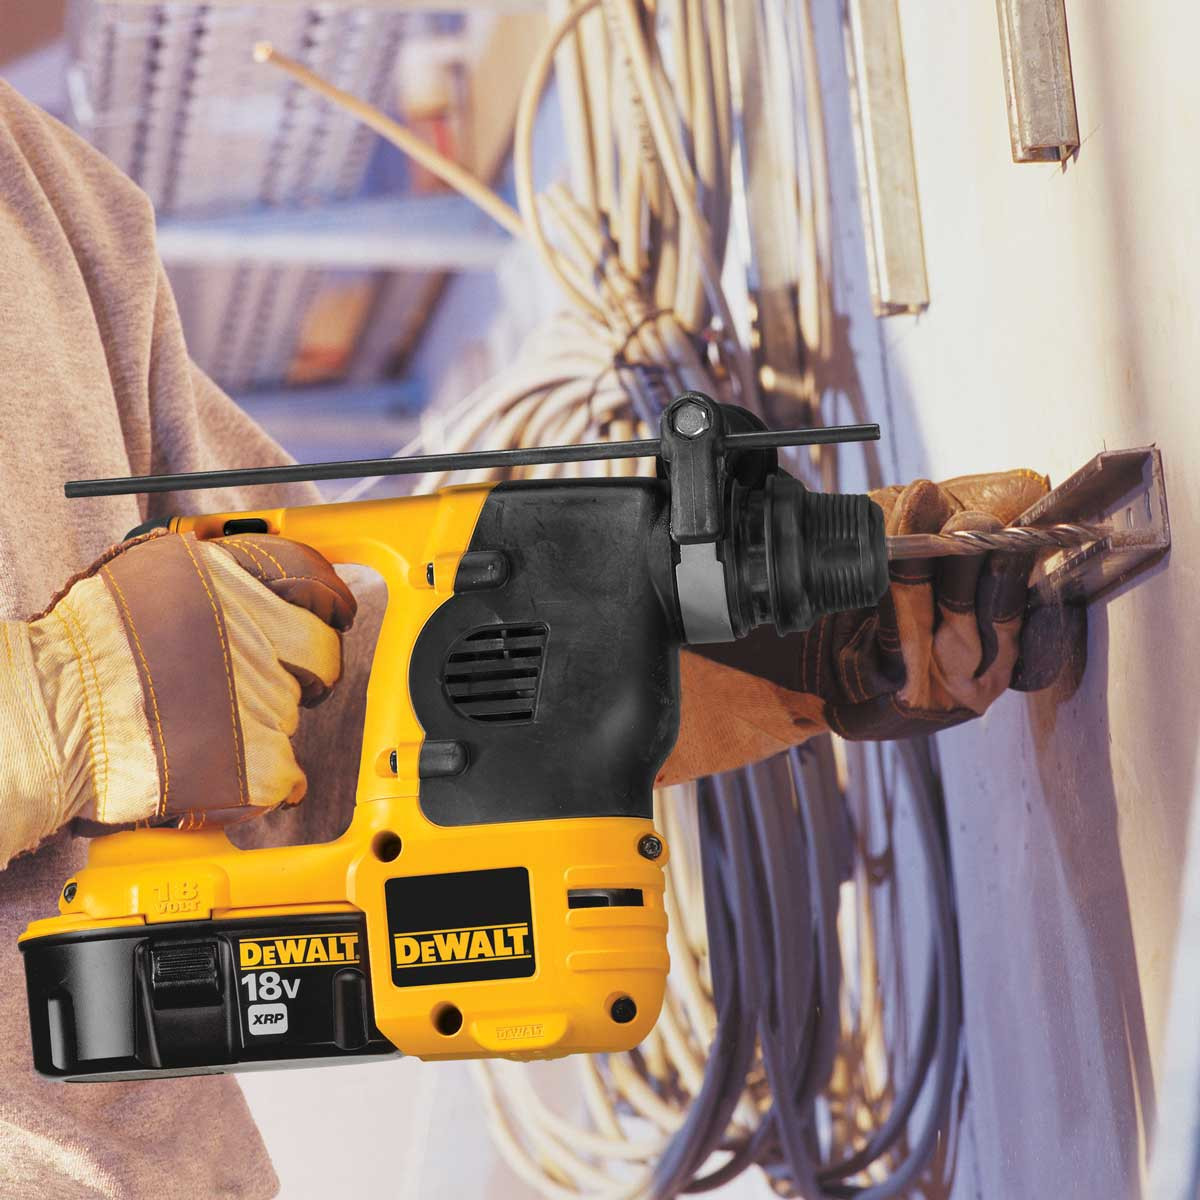 Dewalt 36 Volts SDS Plus hammer